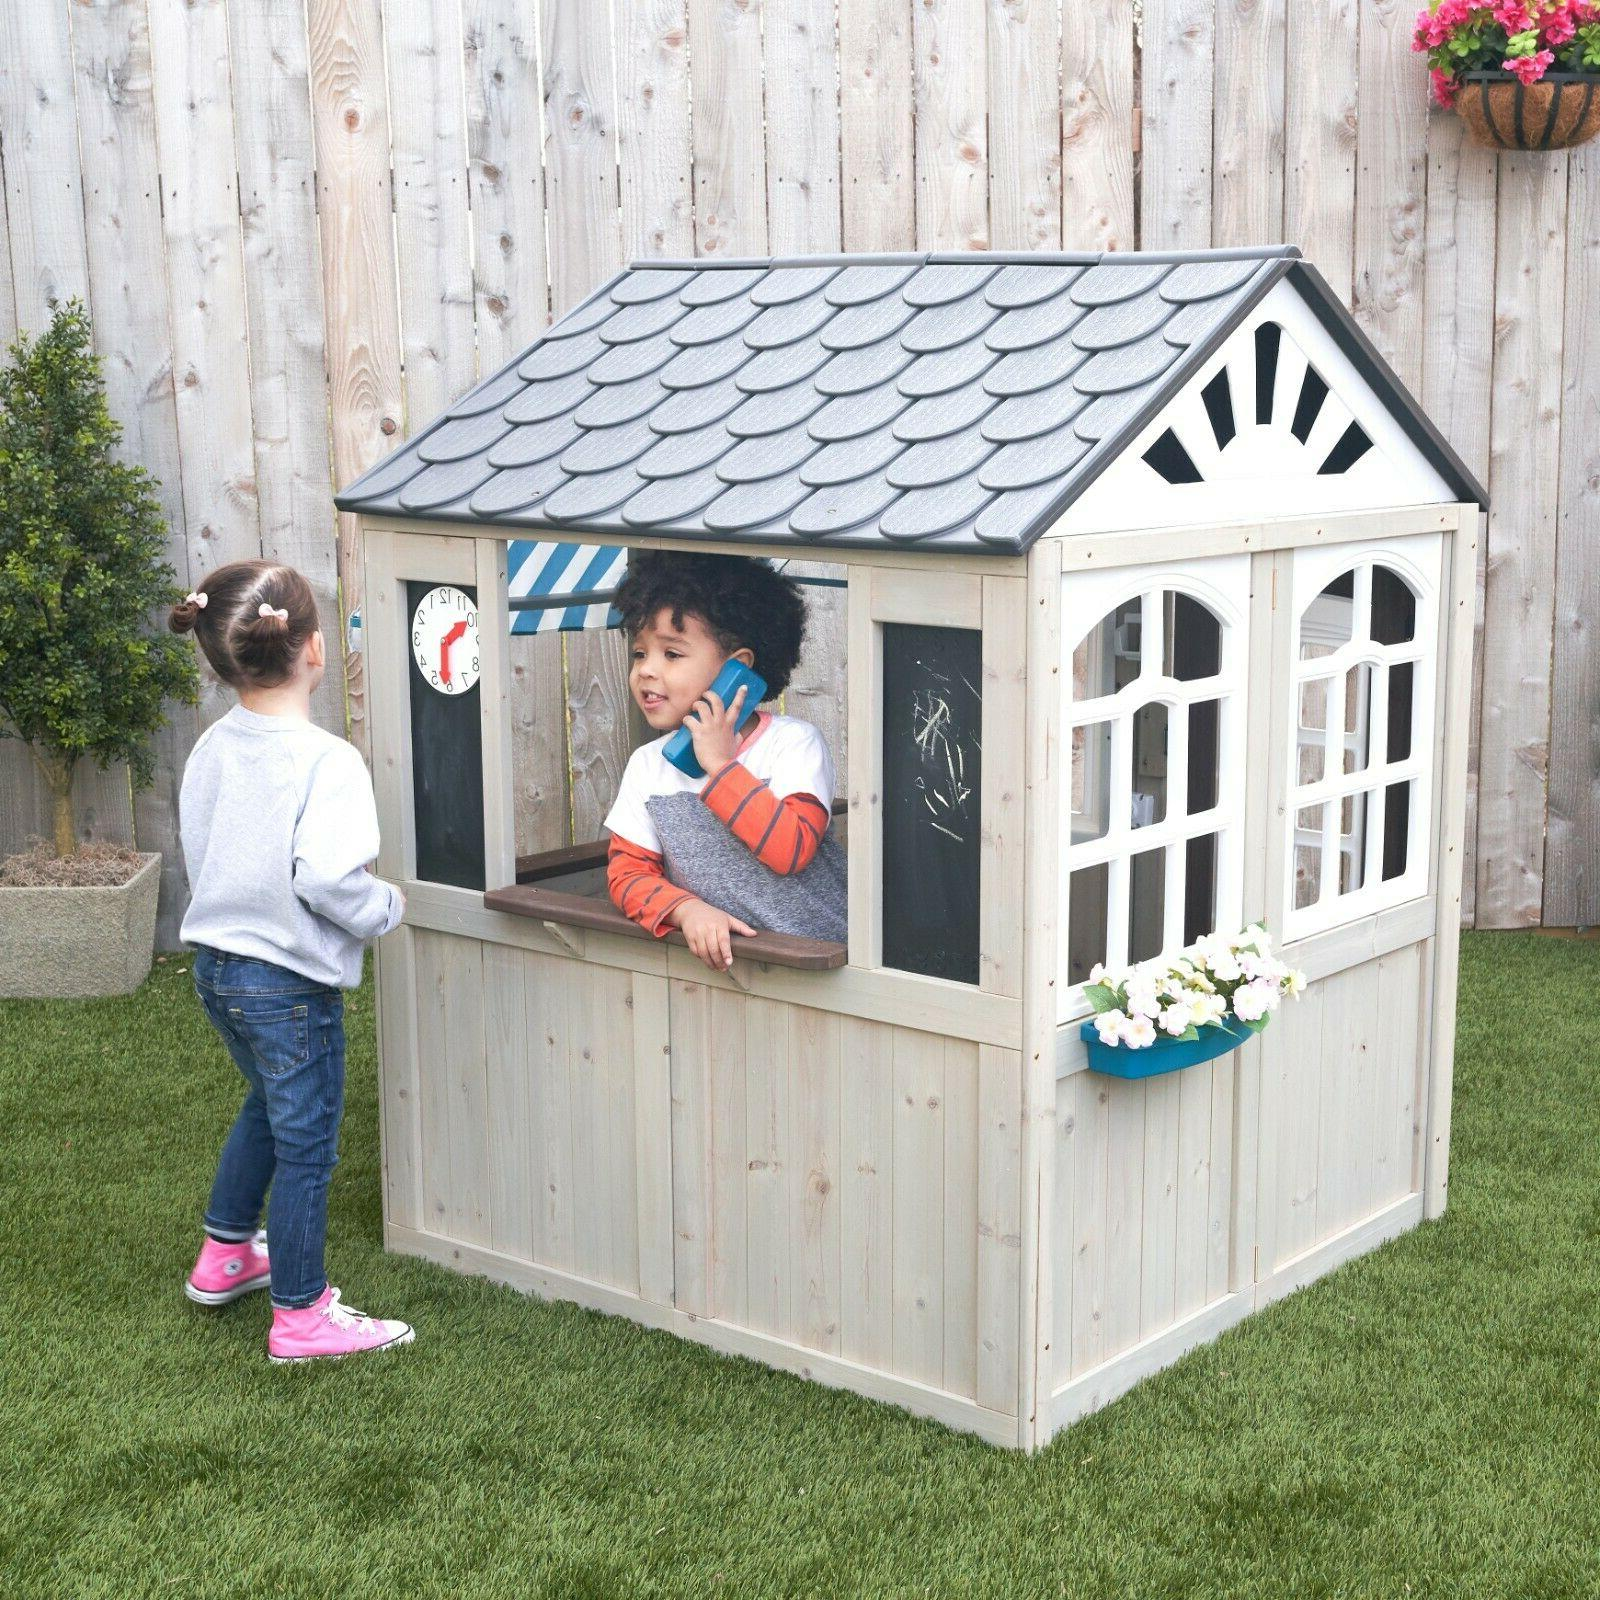 Hillcrest Wooden Playhouse by KidKraft